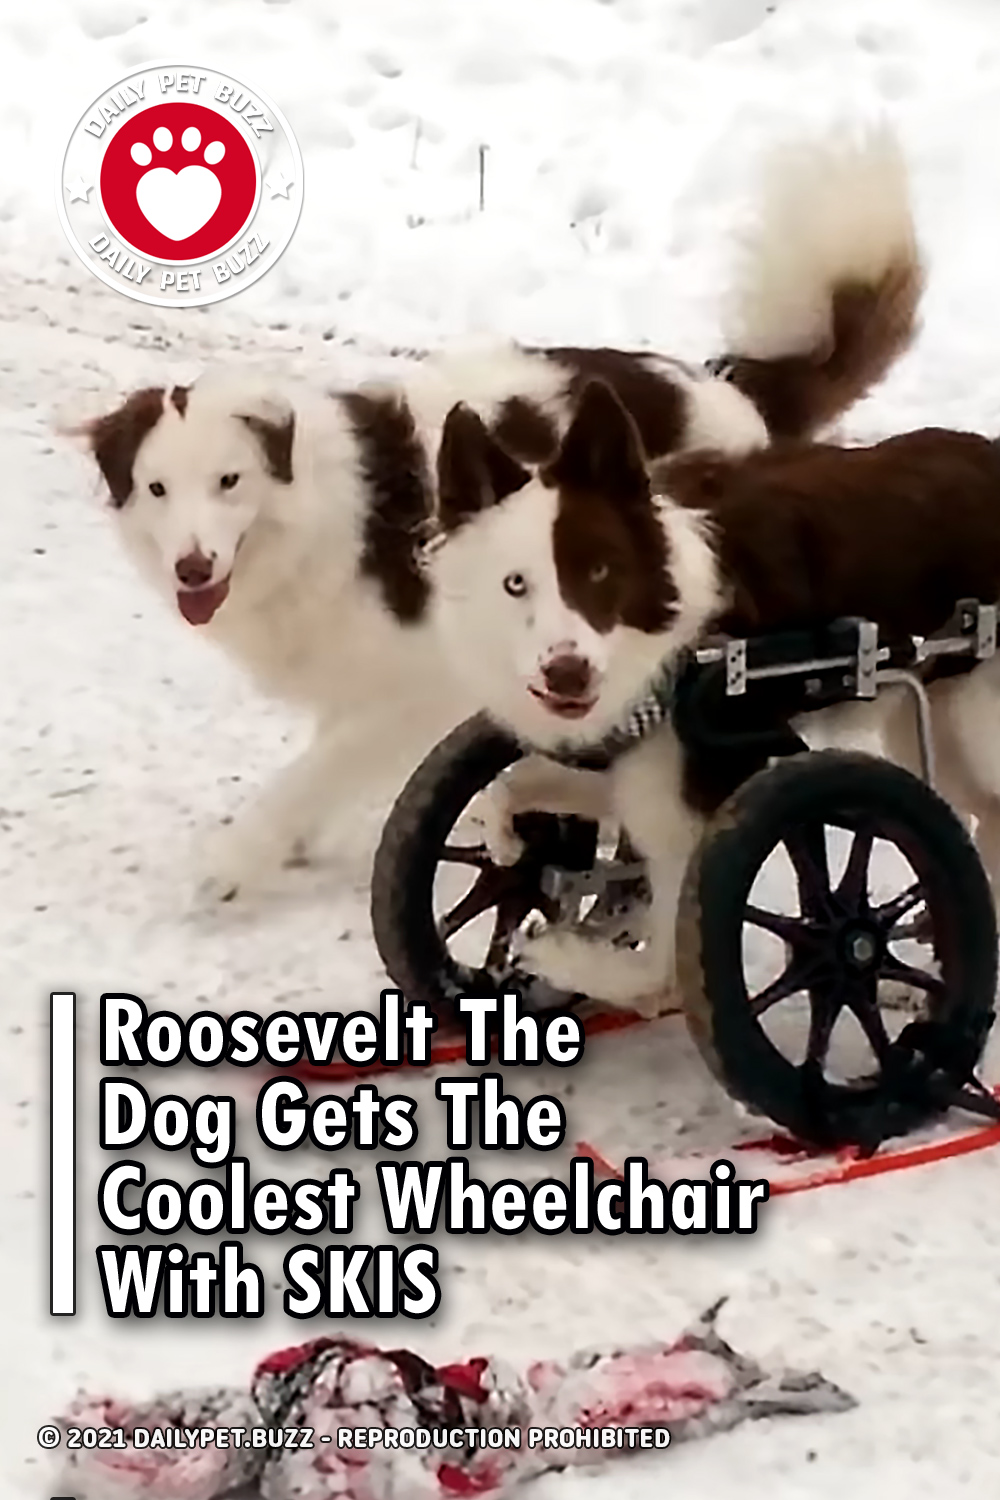 Roosevelt The Dog Gets The Coolest Wheelchair With SKIS